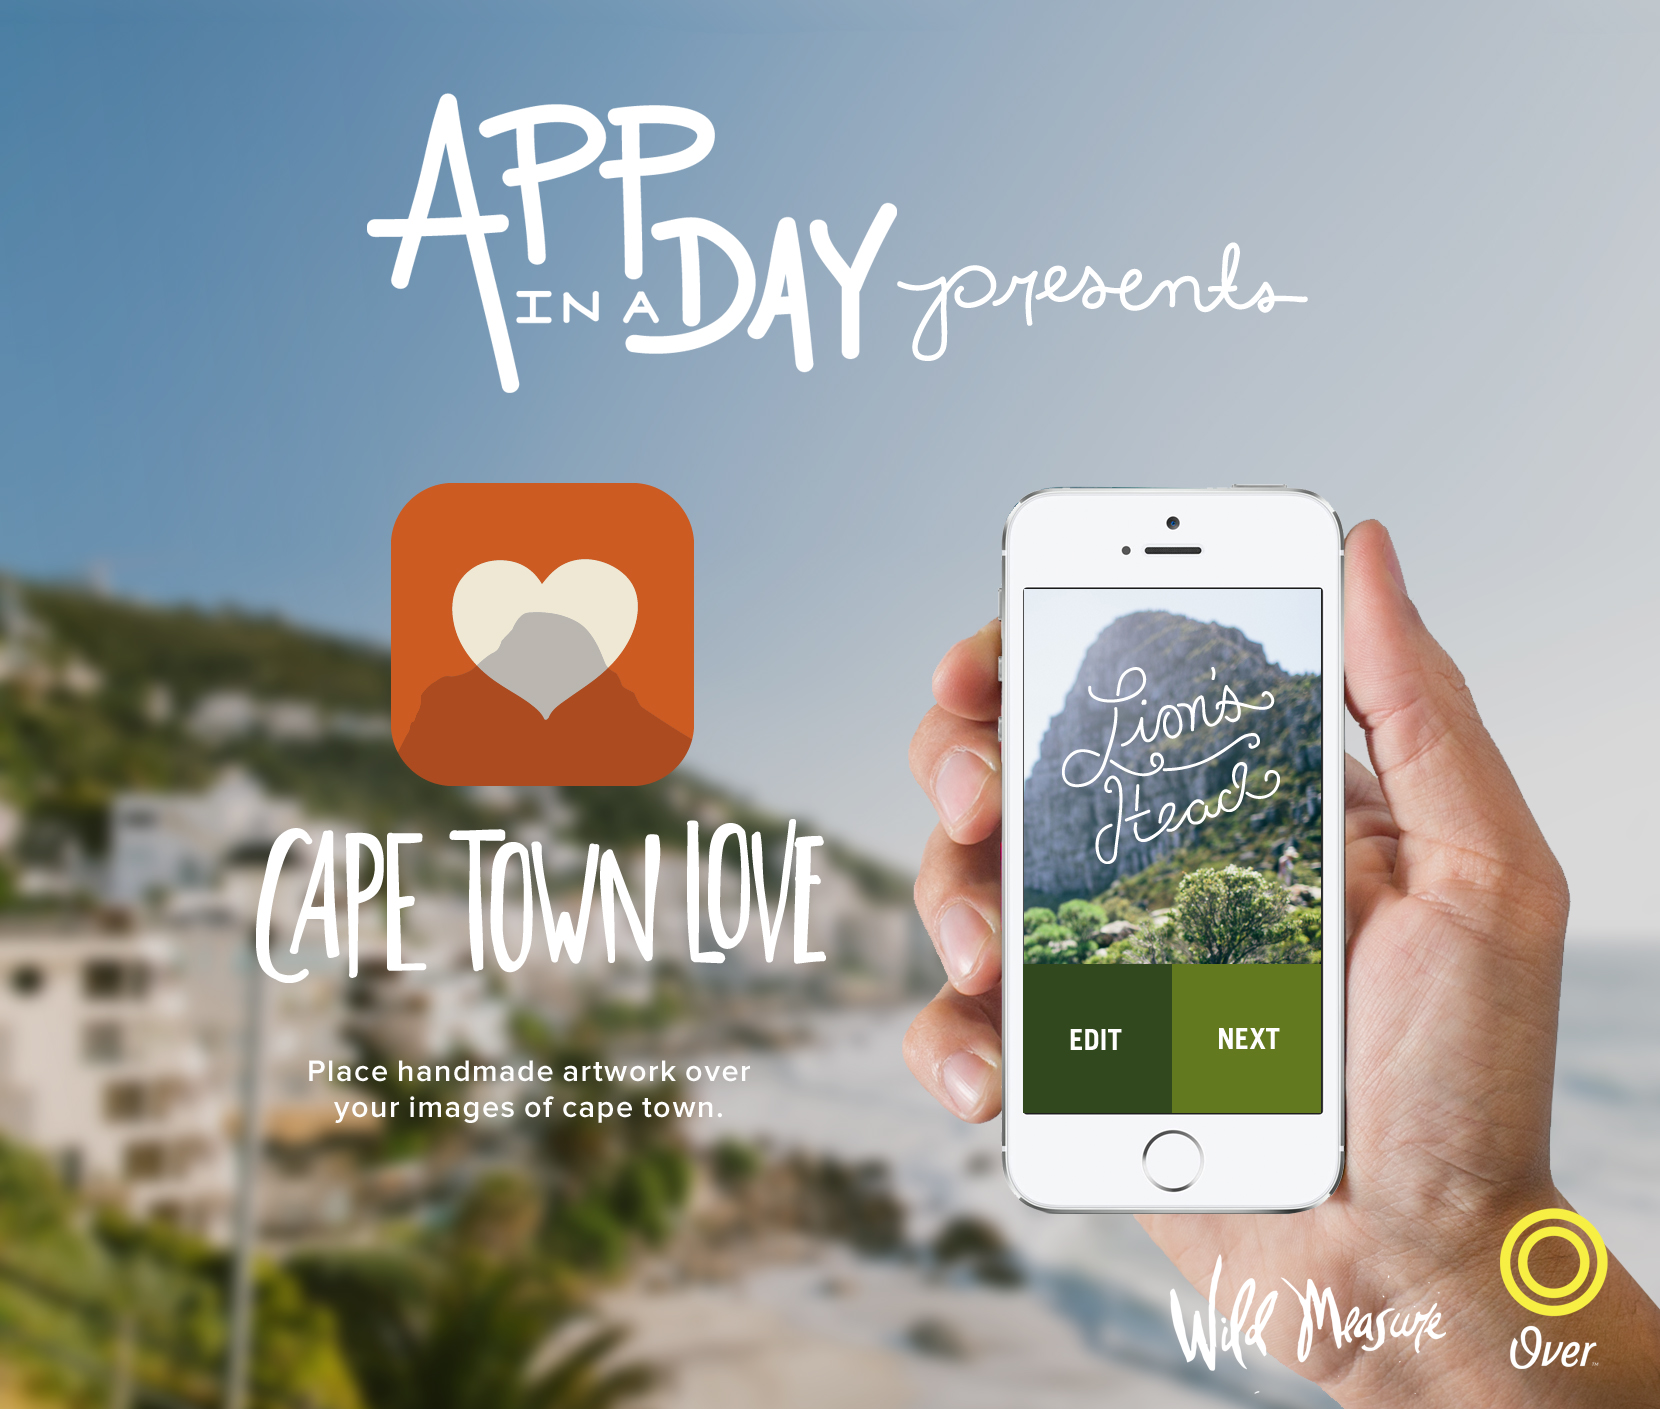 App In A Day: Cape Town Love | The Fresh Exchange